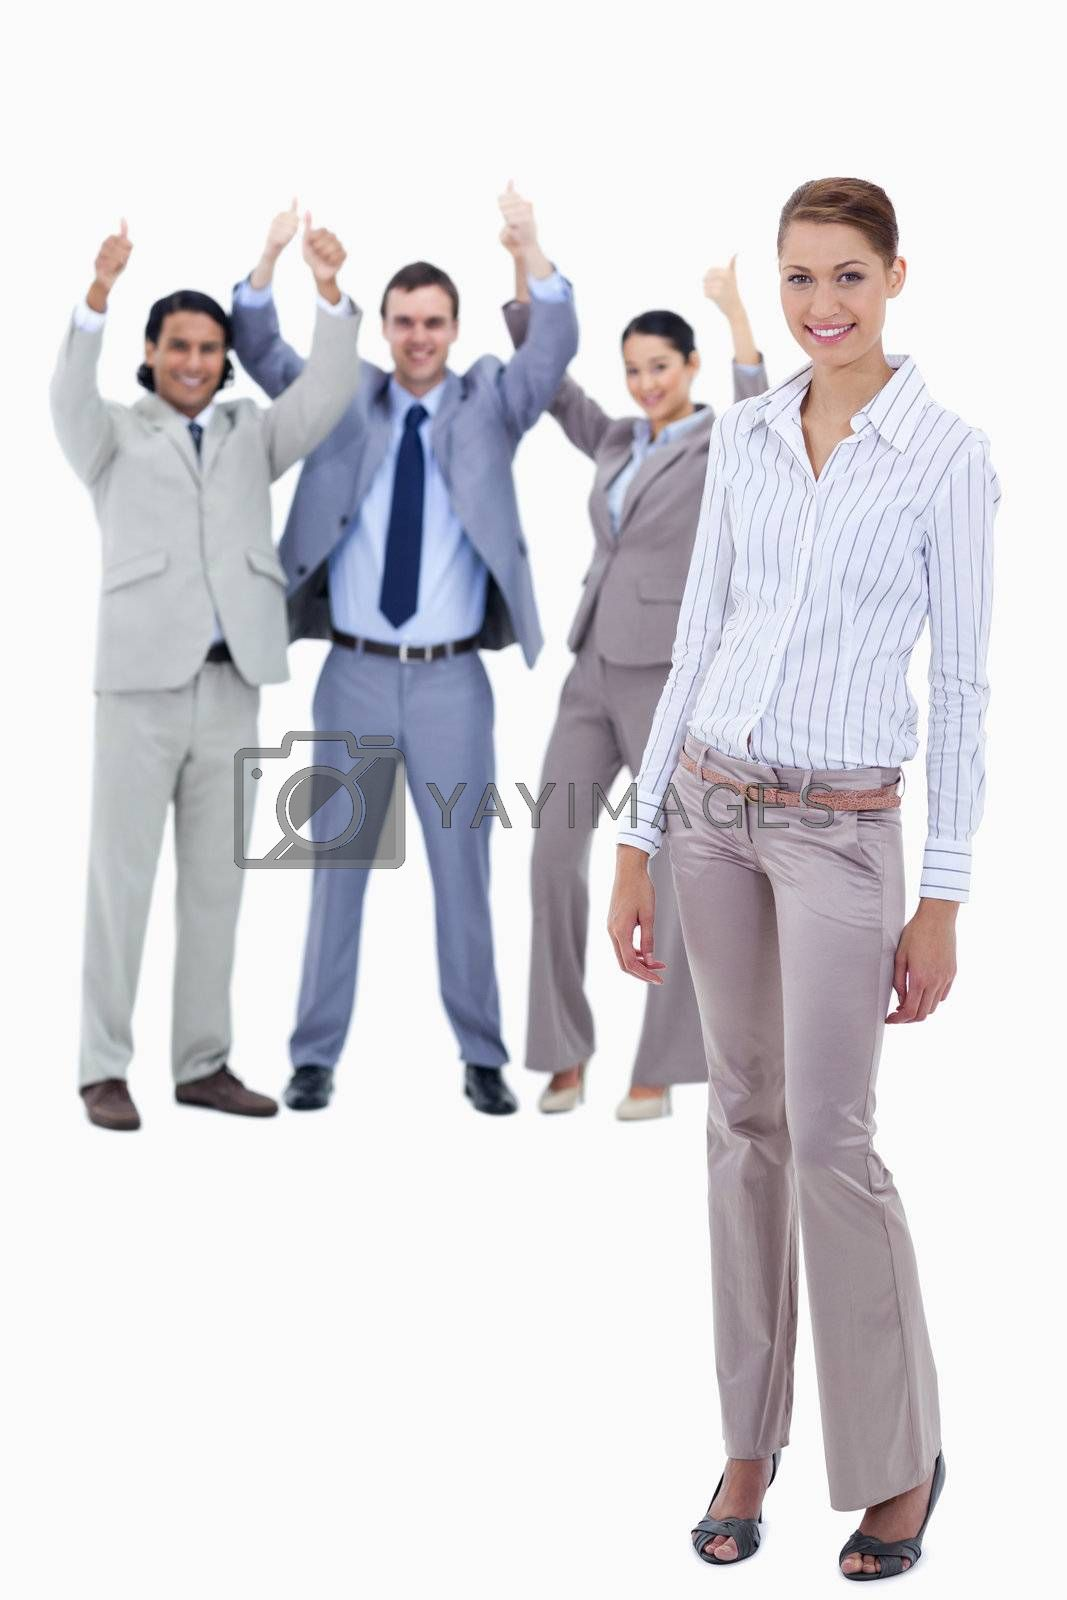 Secretary smiling with her arms along her body and business people with the thumbs up in the background